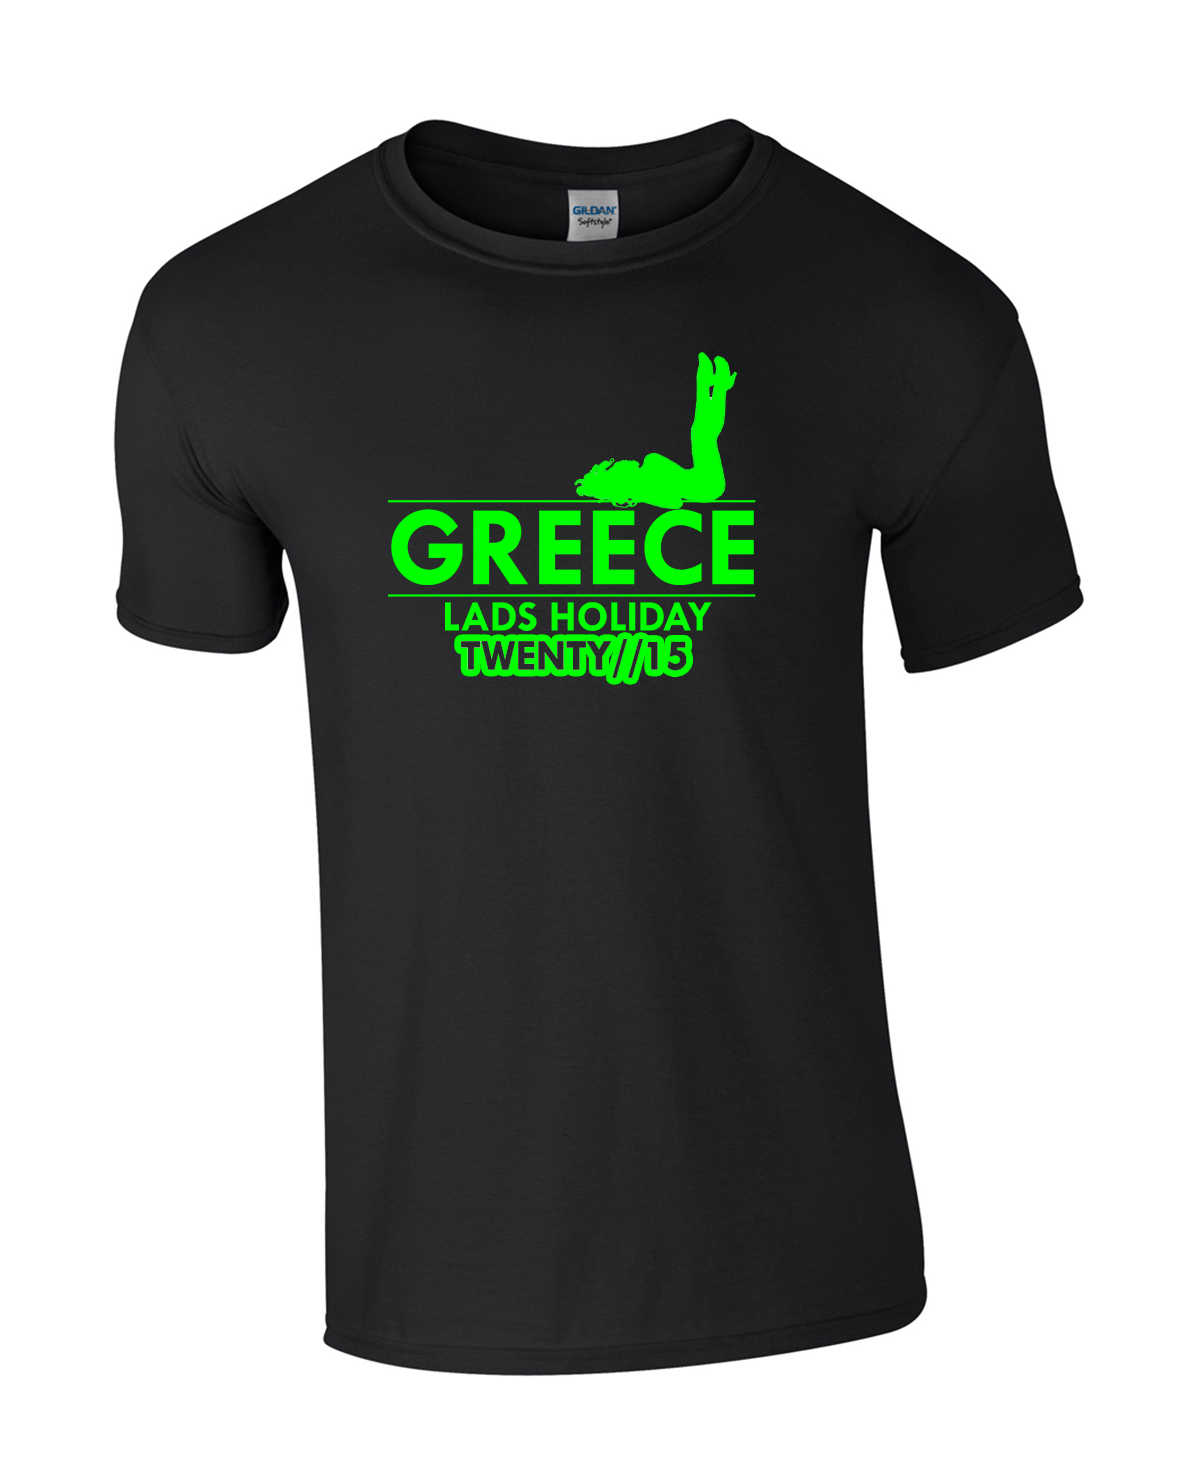 Lying Girl Greece Holiday | Lads Holiday | Group T-Shirts